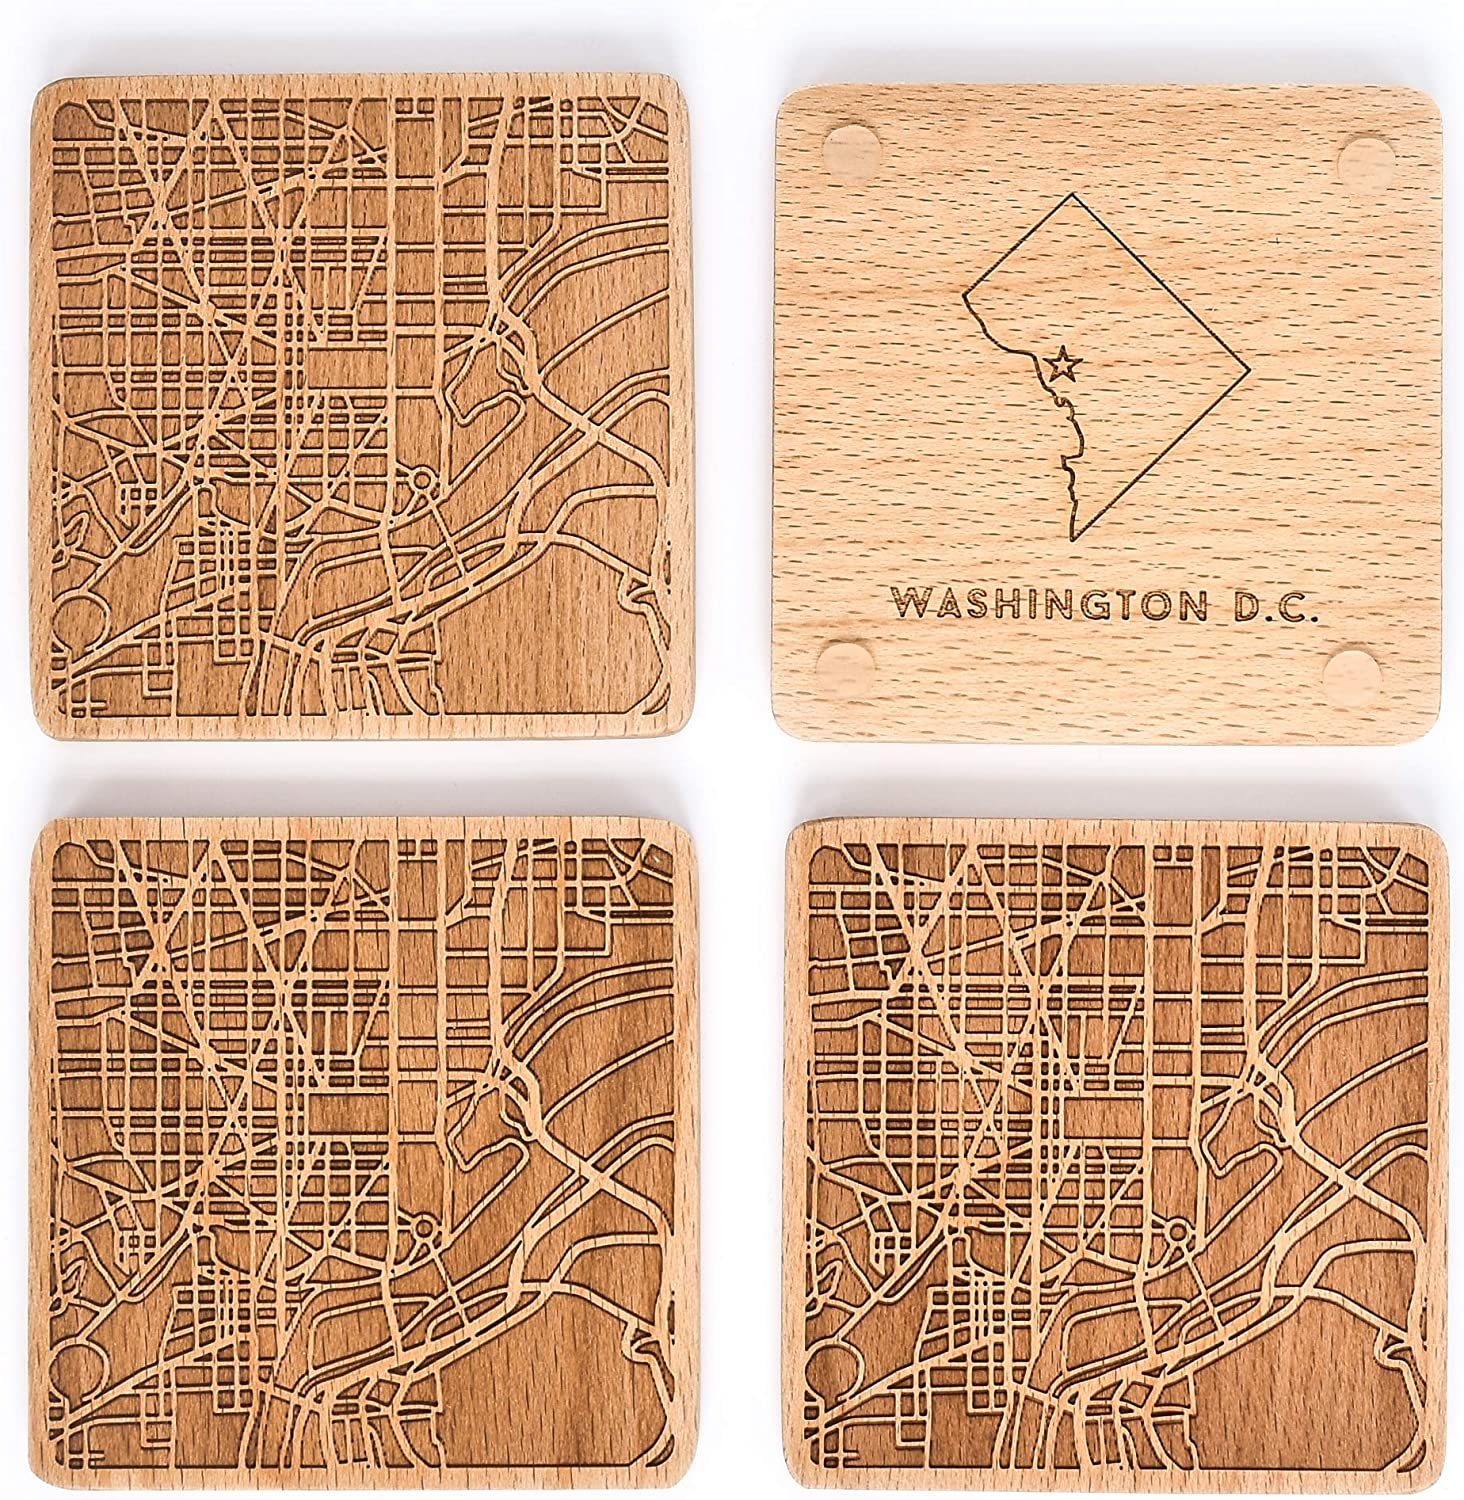 Greenline Goods Beech Wood Coasters Etched Wooden Coaster Set for Washington Lovers | Set of 4 | Etched with Washington Map and State of DC | 2 Sided | Includes Protective Silicone Furniture Pads